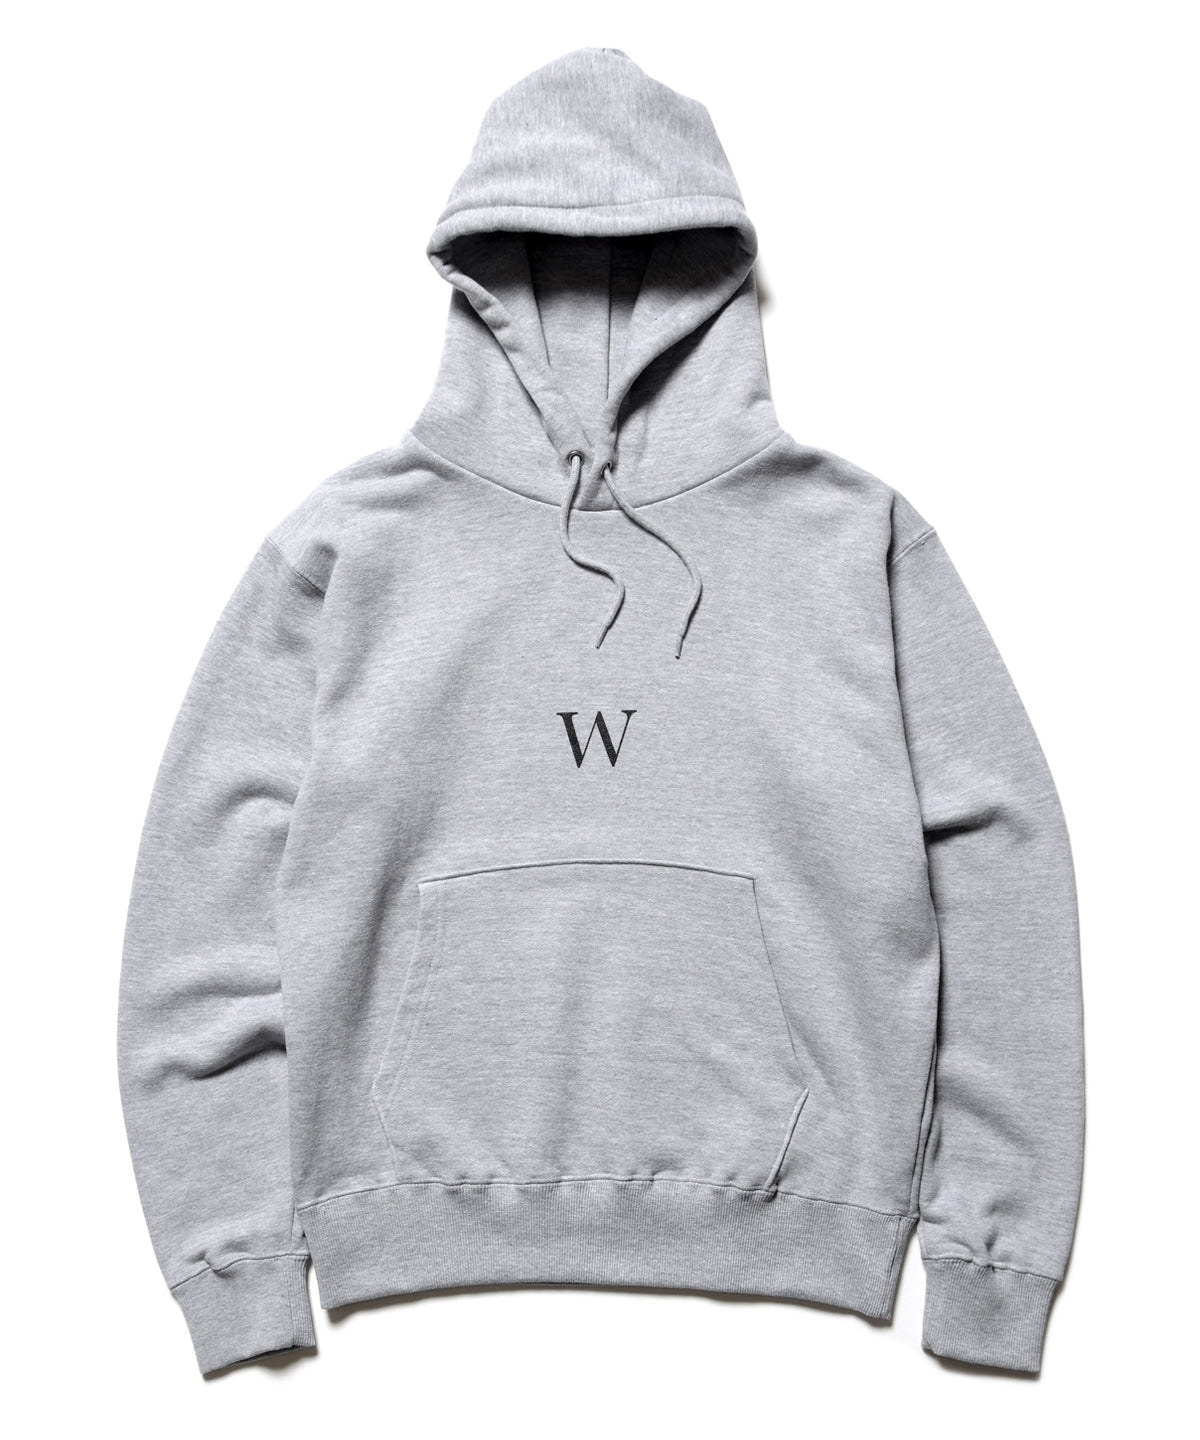 W POWER TO THE PEOPLE PULLOVER SWEAT PARKA